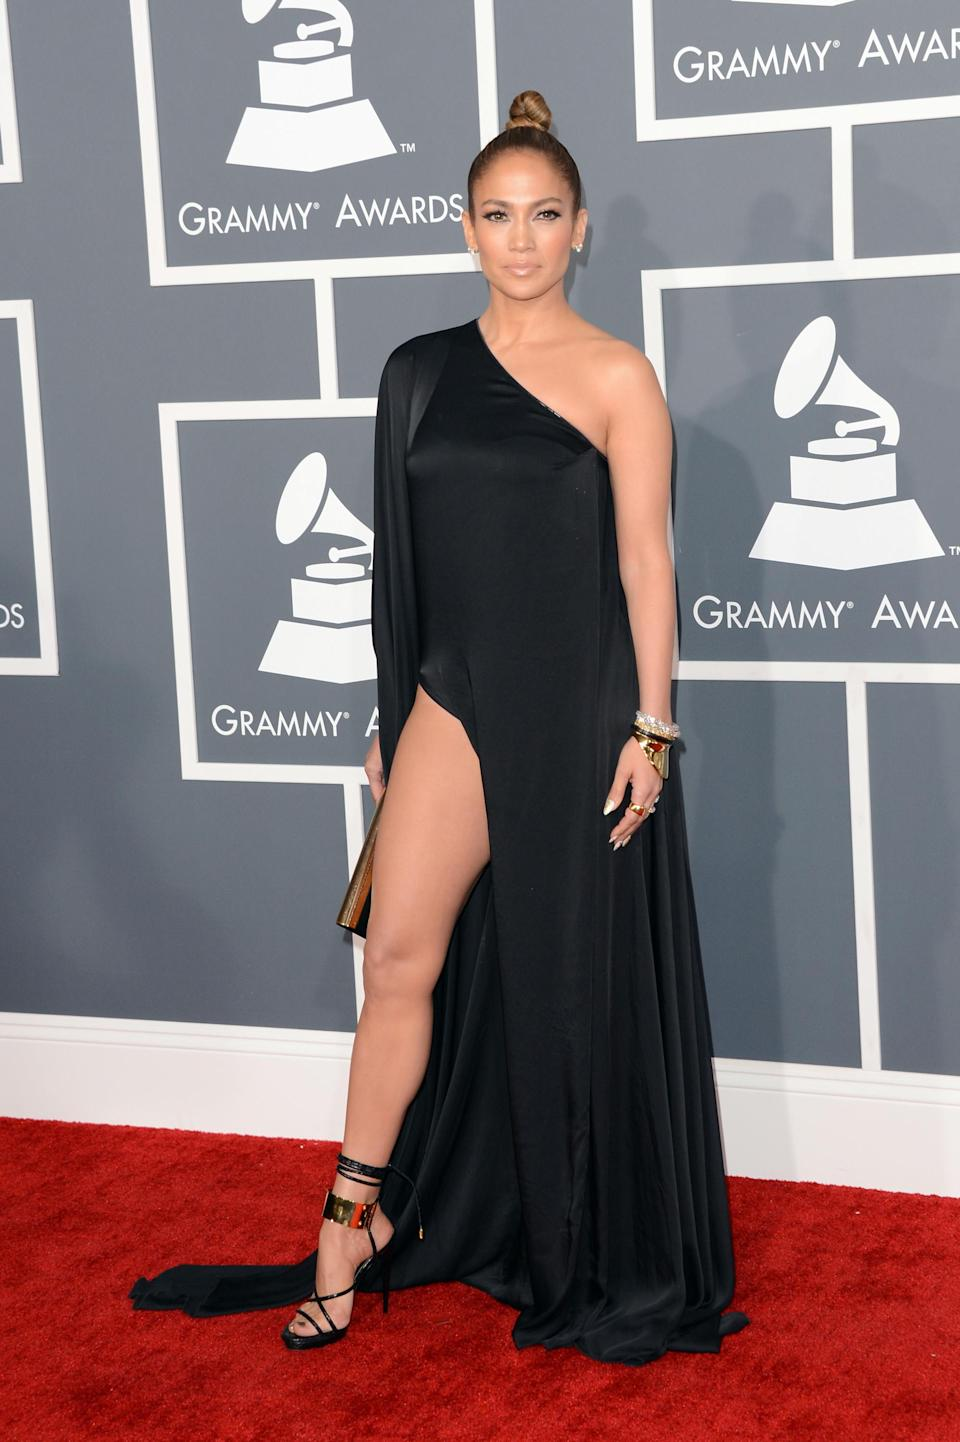 <p>Going for a more demure look at the 55th Annual Grammy Awards, this leggy ensemble showed that J.Lo, like always, still has it. The asymetric look was a fresh take for the 'Live it Up' performer. [Photo: Getty] </p>